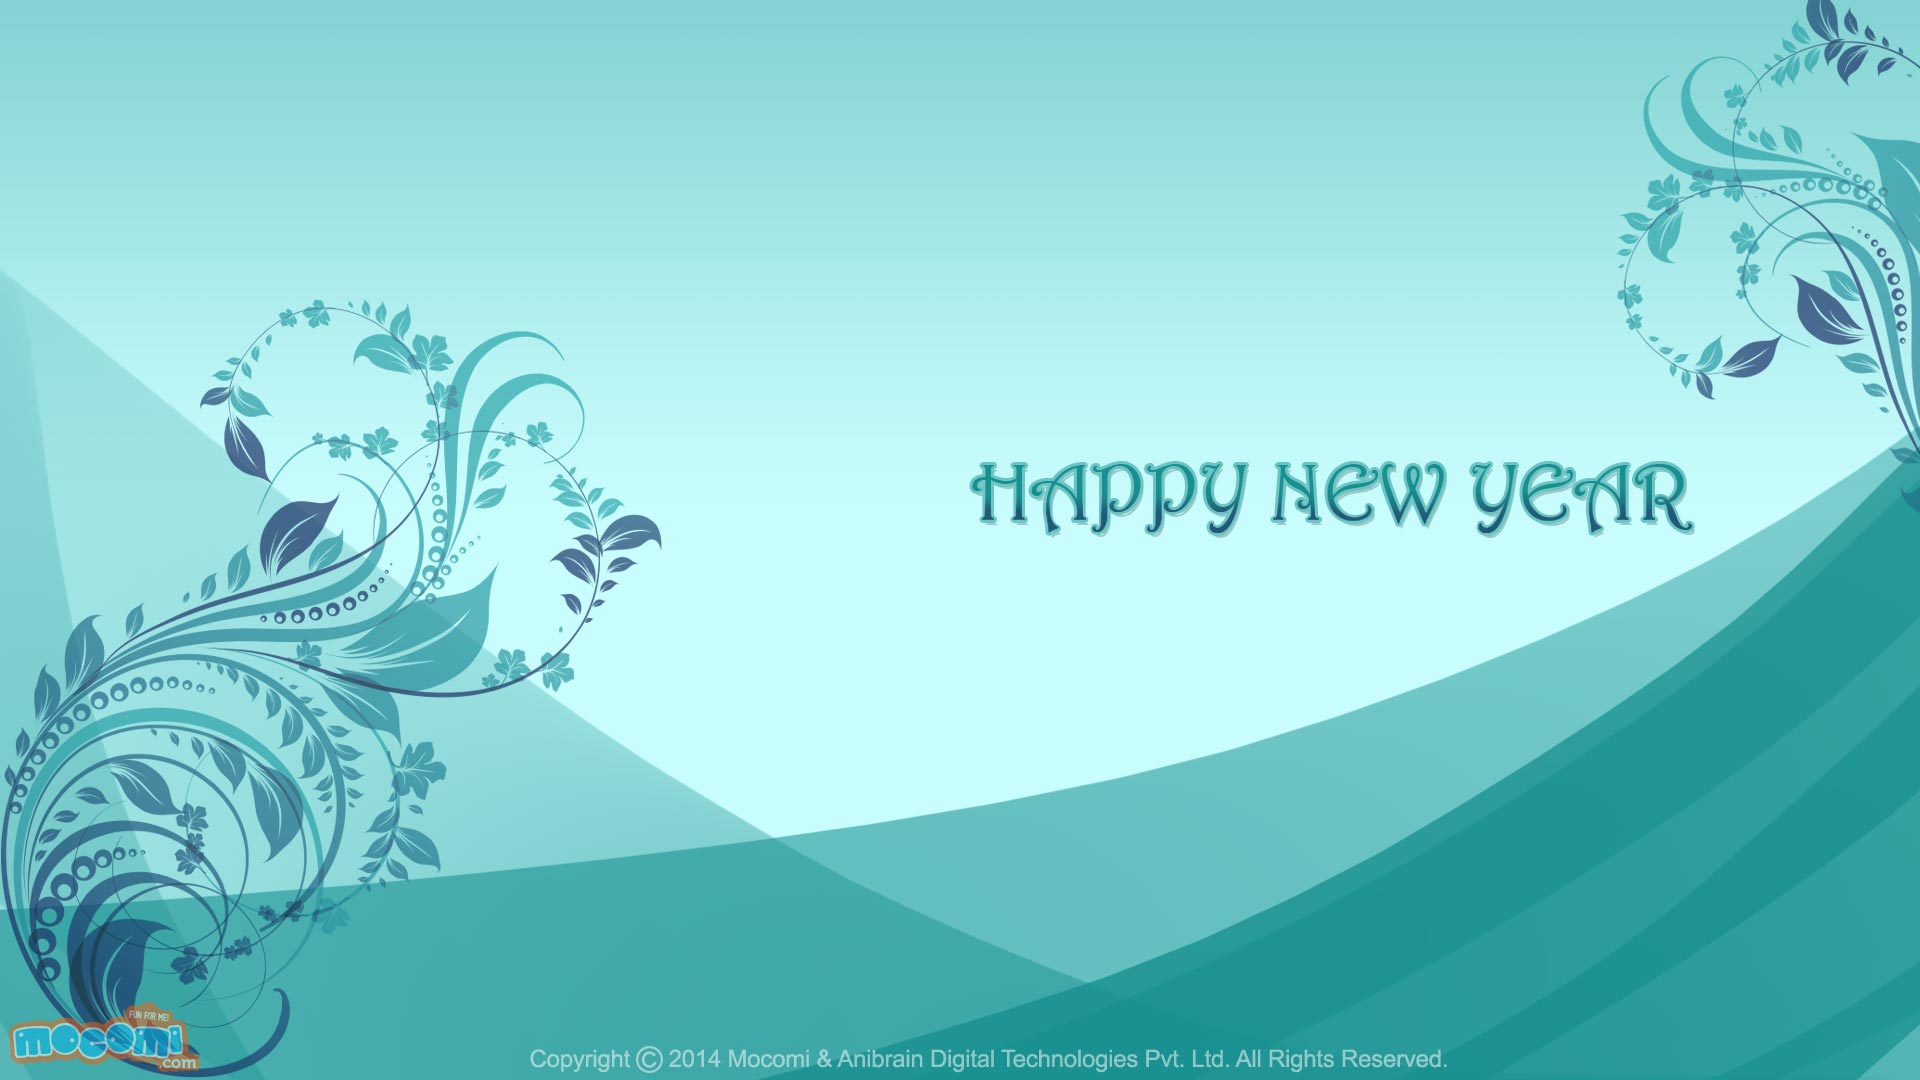 Happy New Year Wallpaper- 2